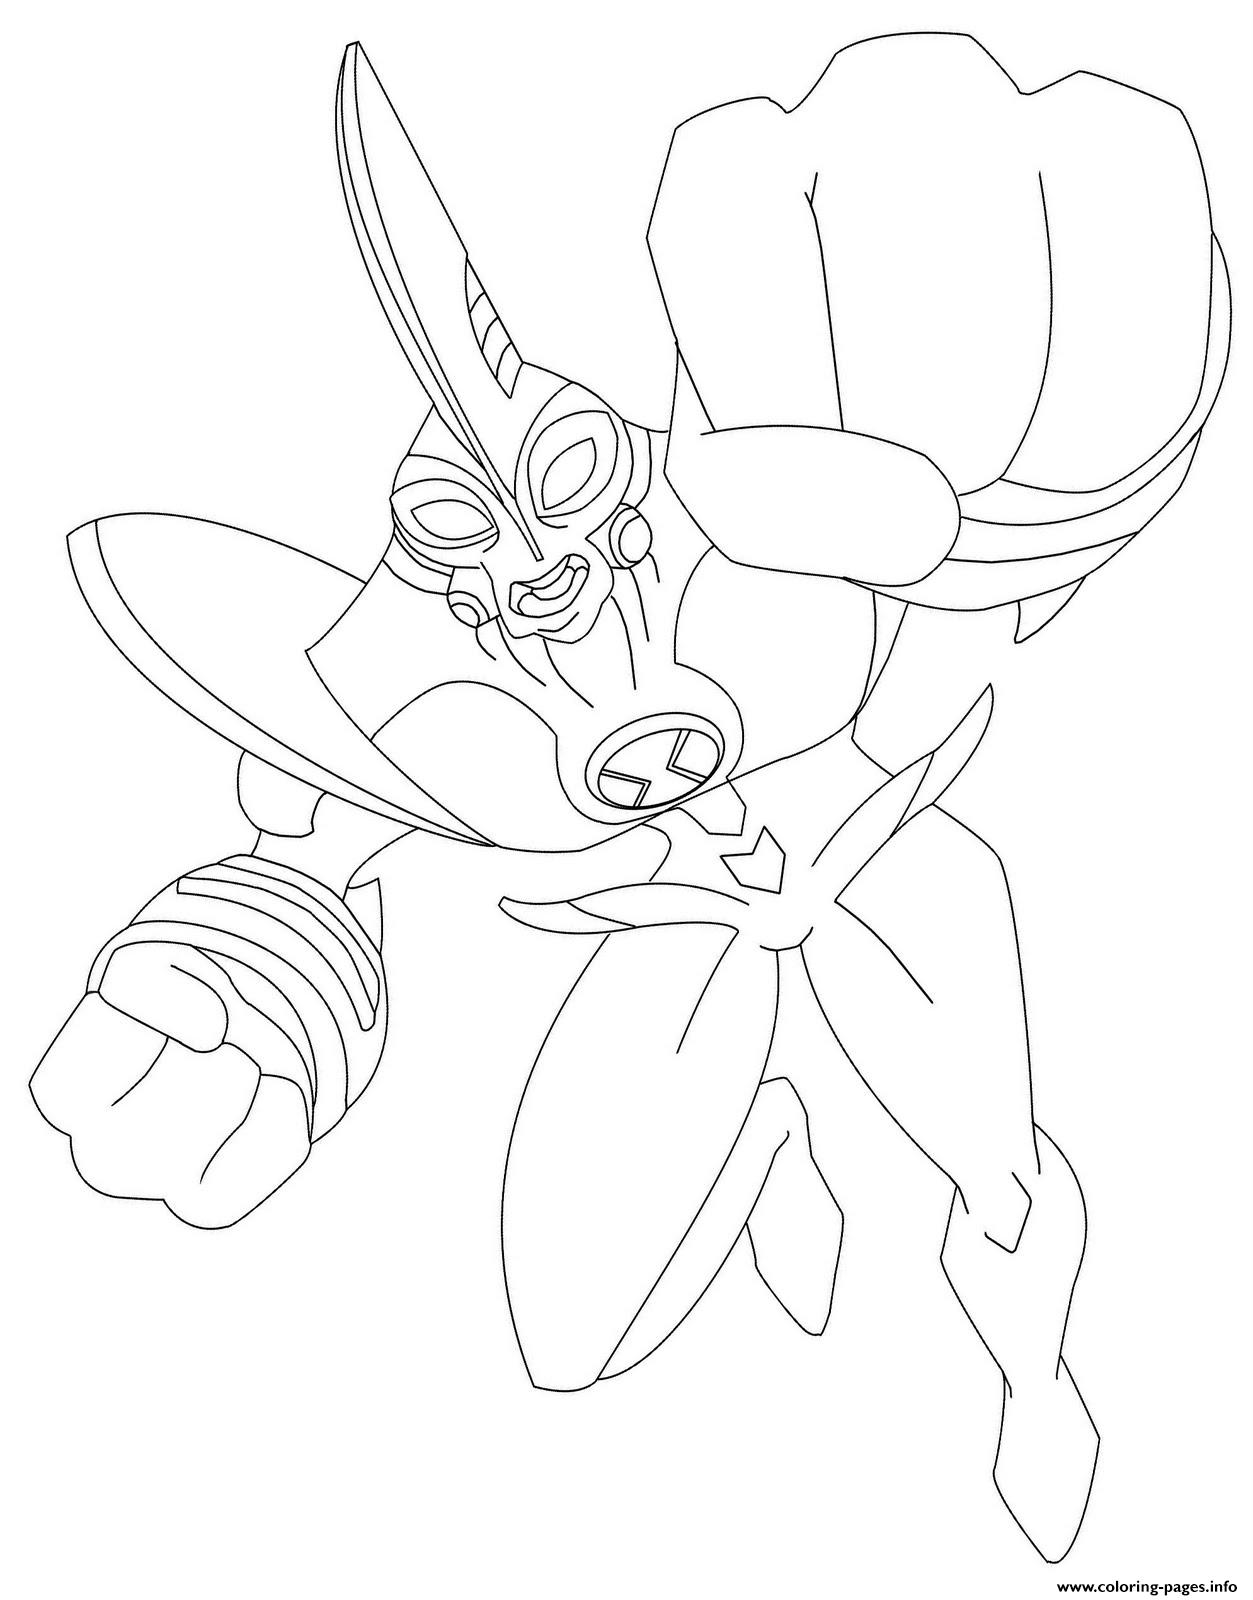 Dessin Ben 10 88 Coloring Pages